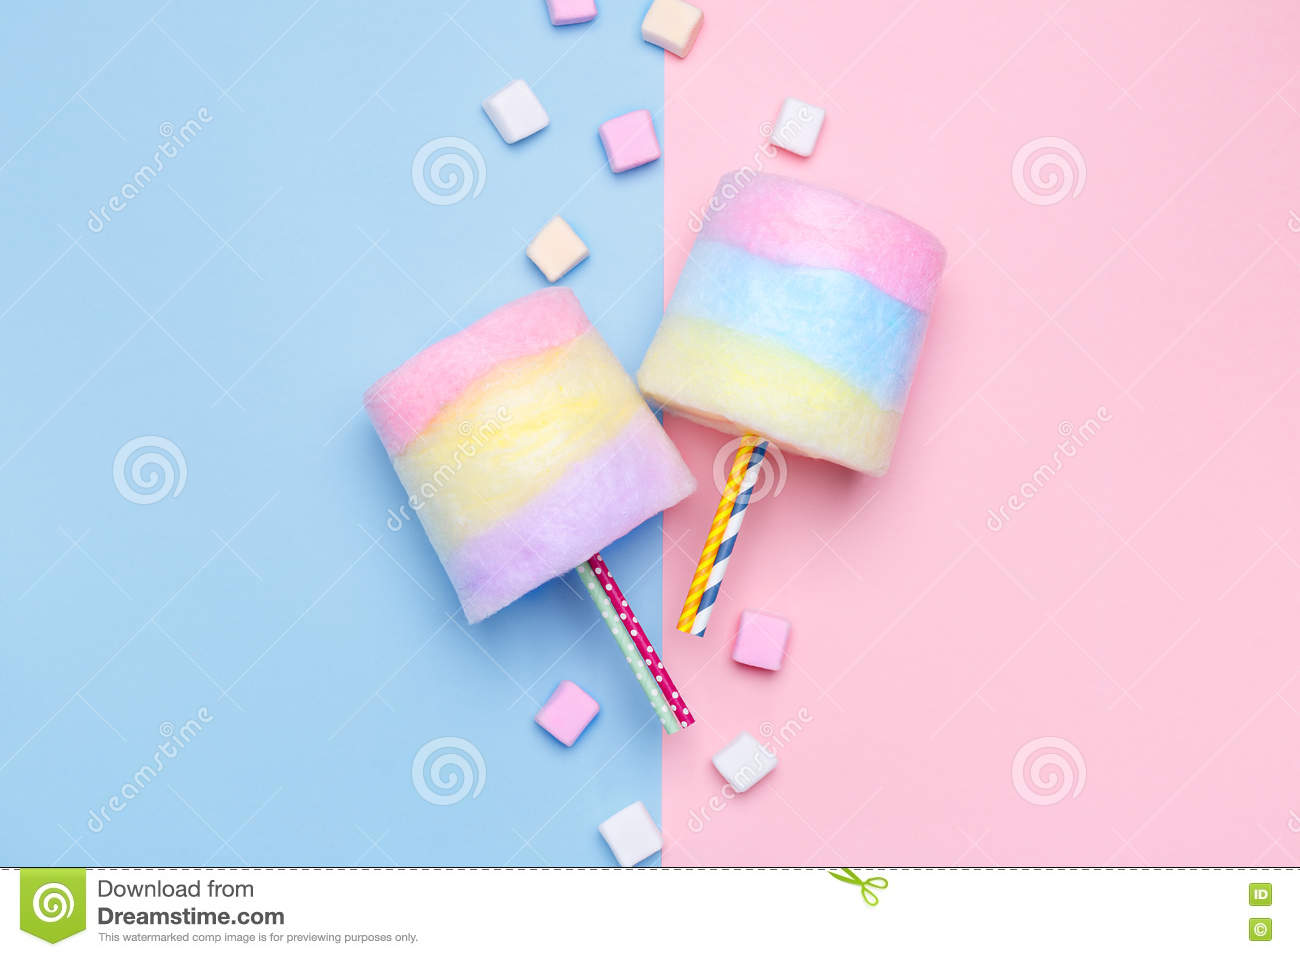 hight resolution of multicolored cotton candy pastel marshmallows minimal style pastel background